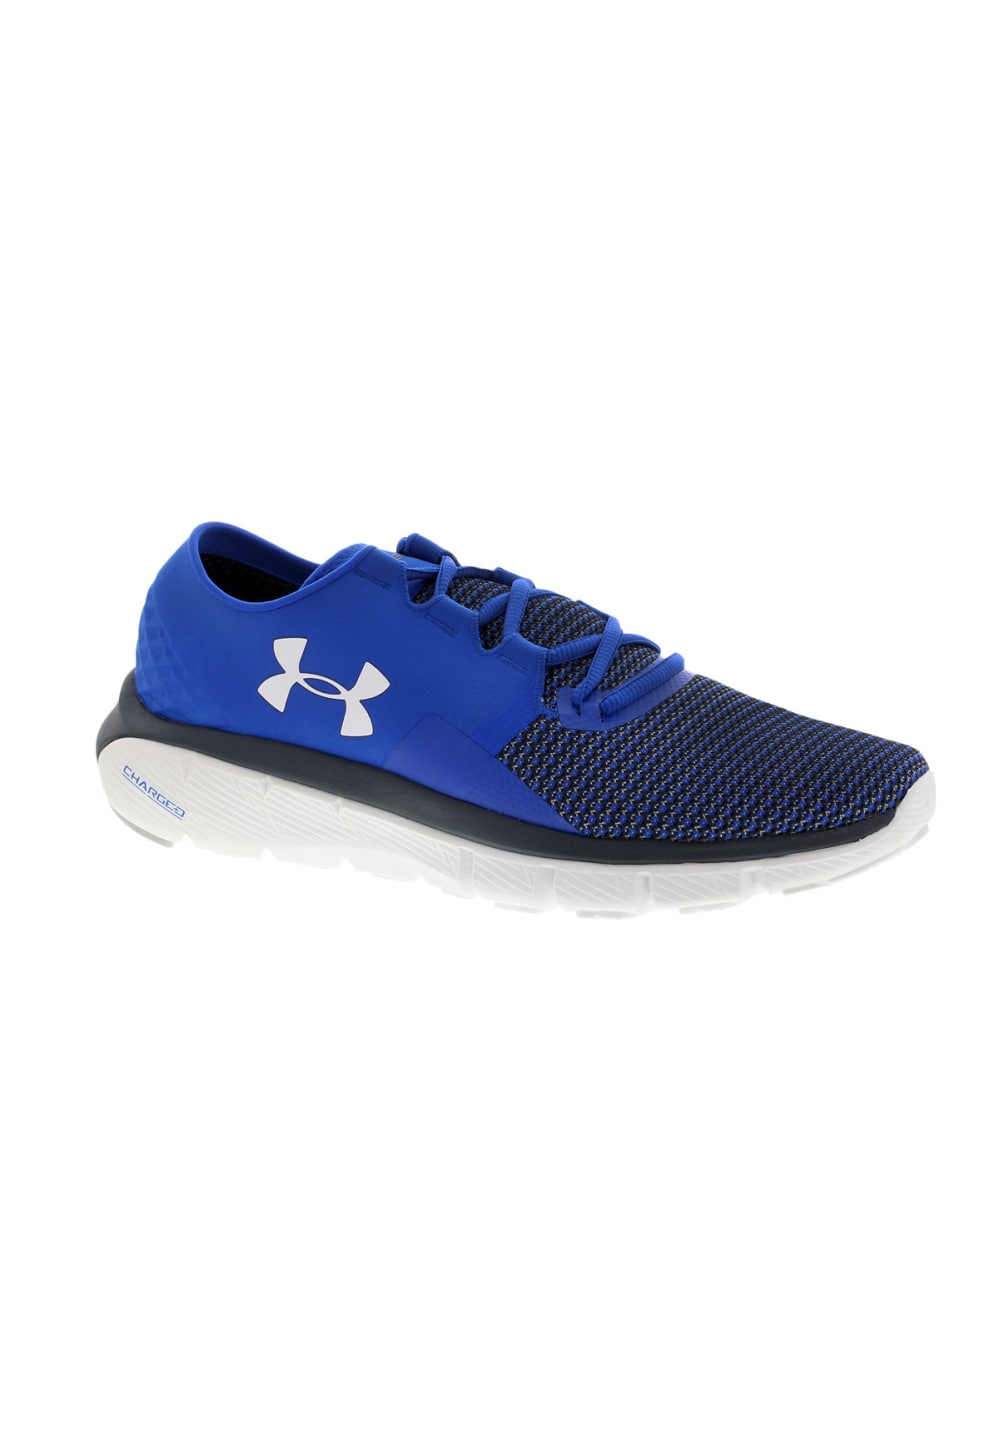 Under Armour Speedform Fortis 2 Hommes Chaussures running